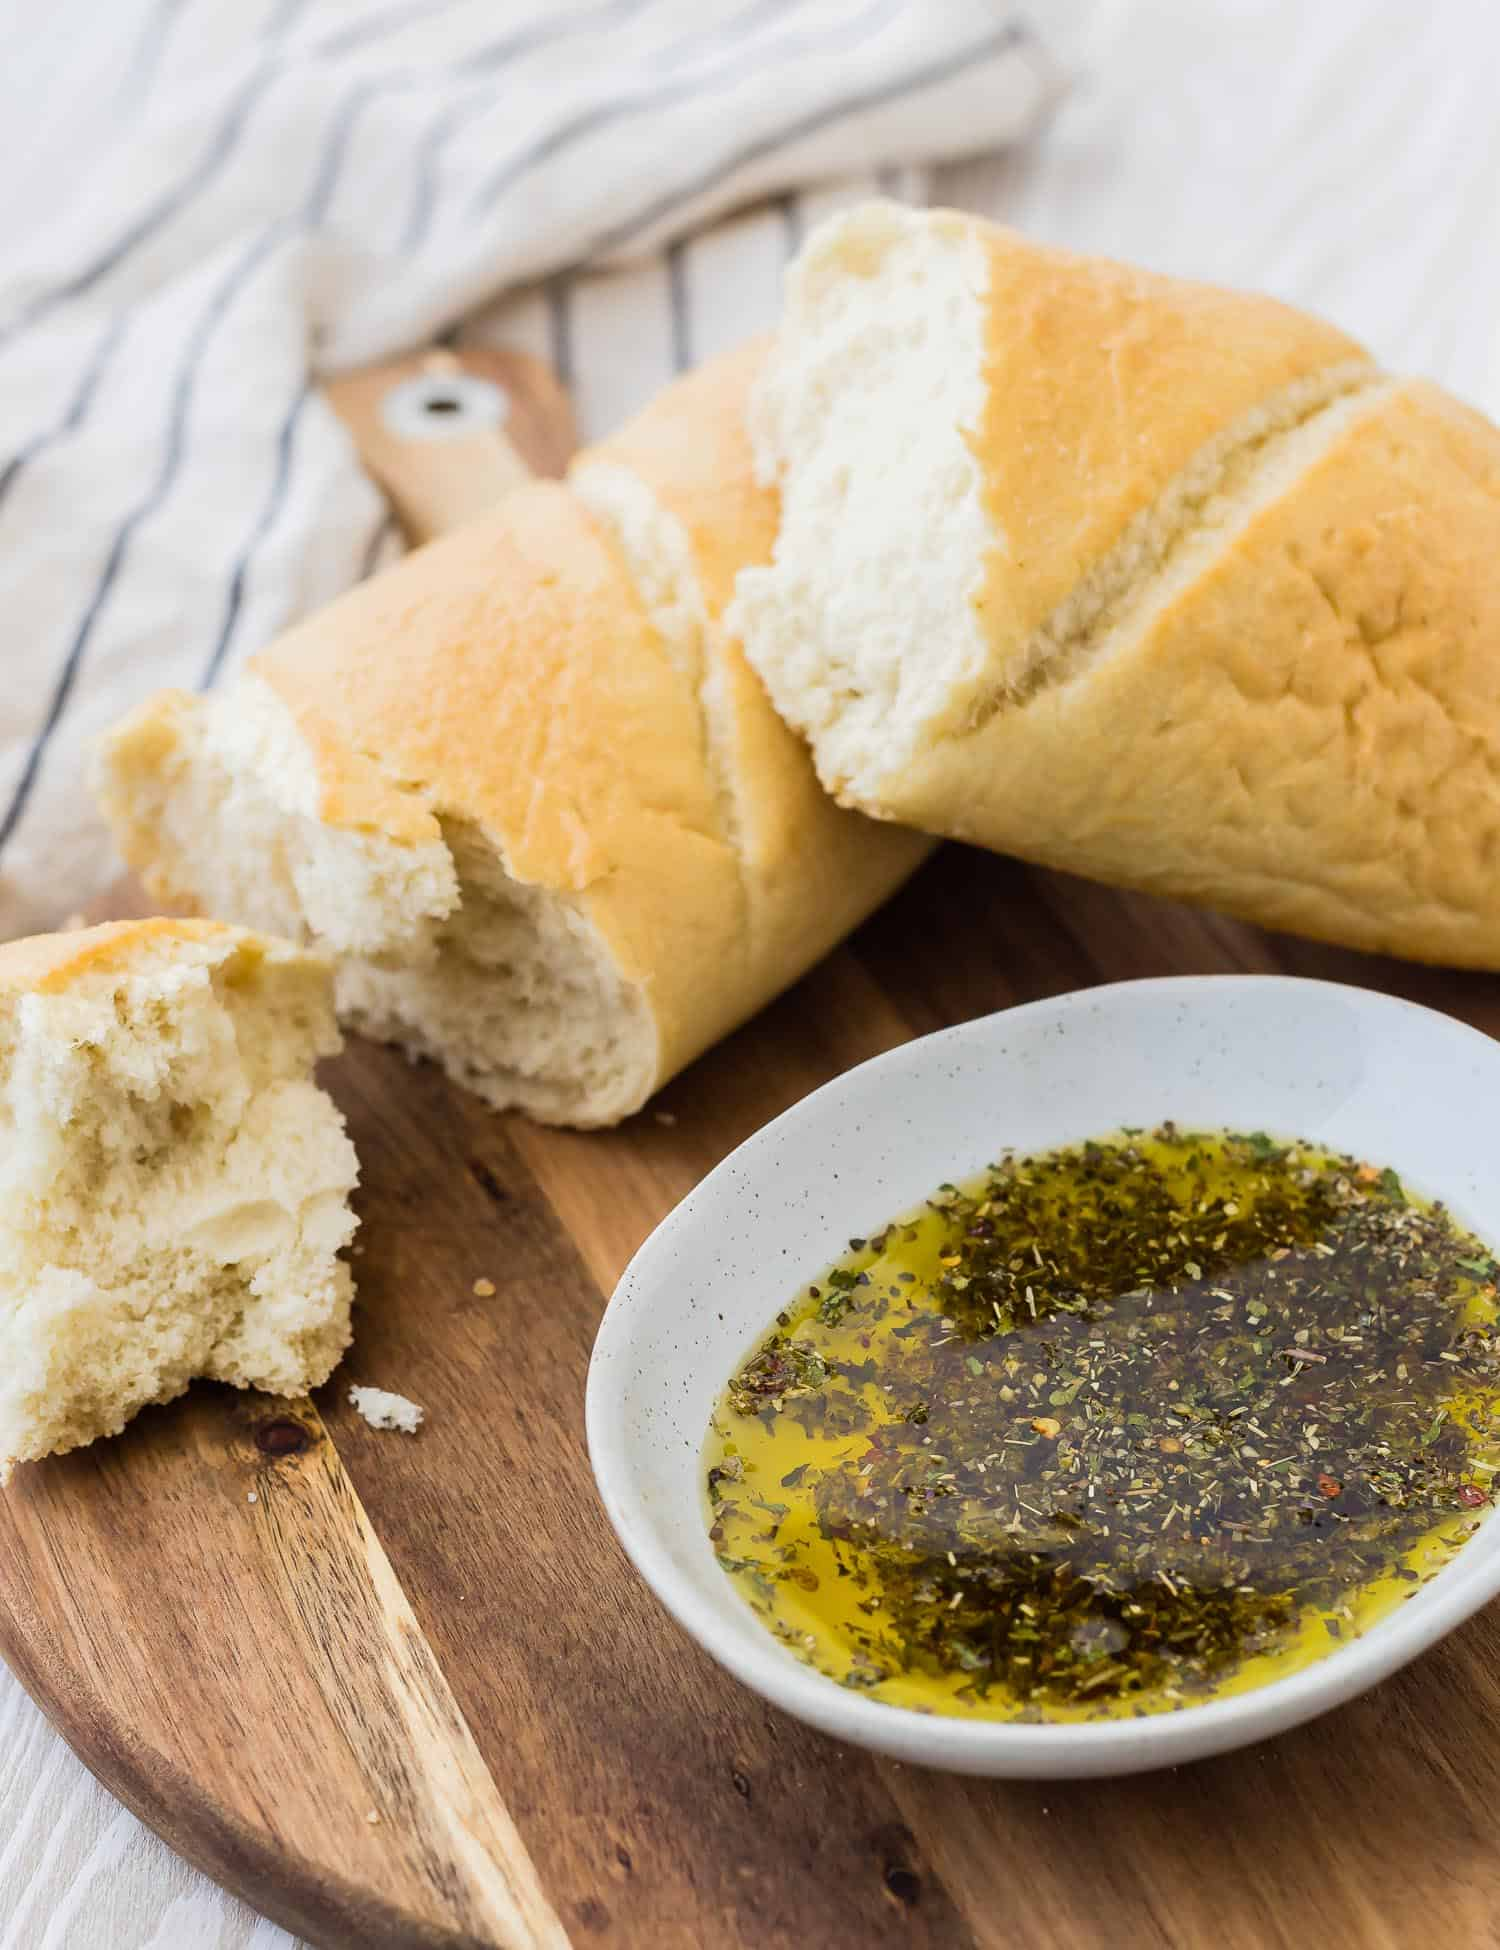 Round wooden cutting board with a small bowl of olive oil and seasonings, and a loaf of bread.